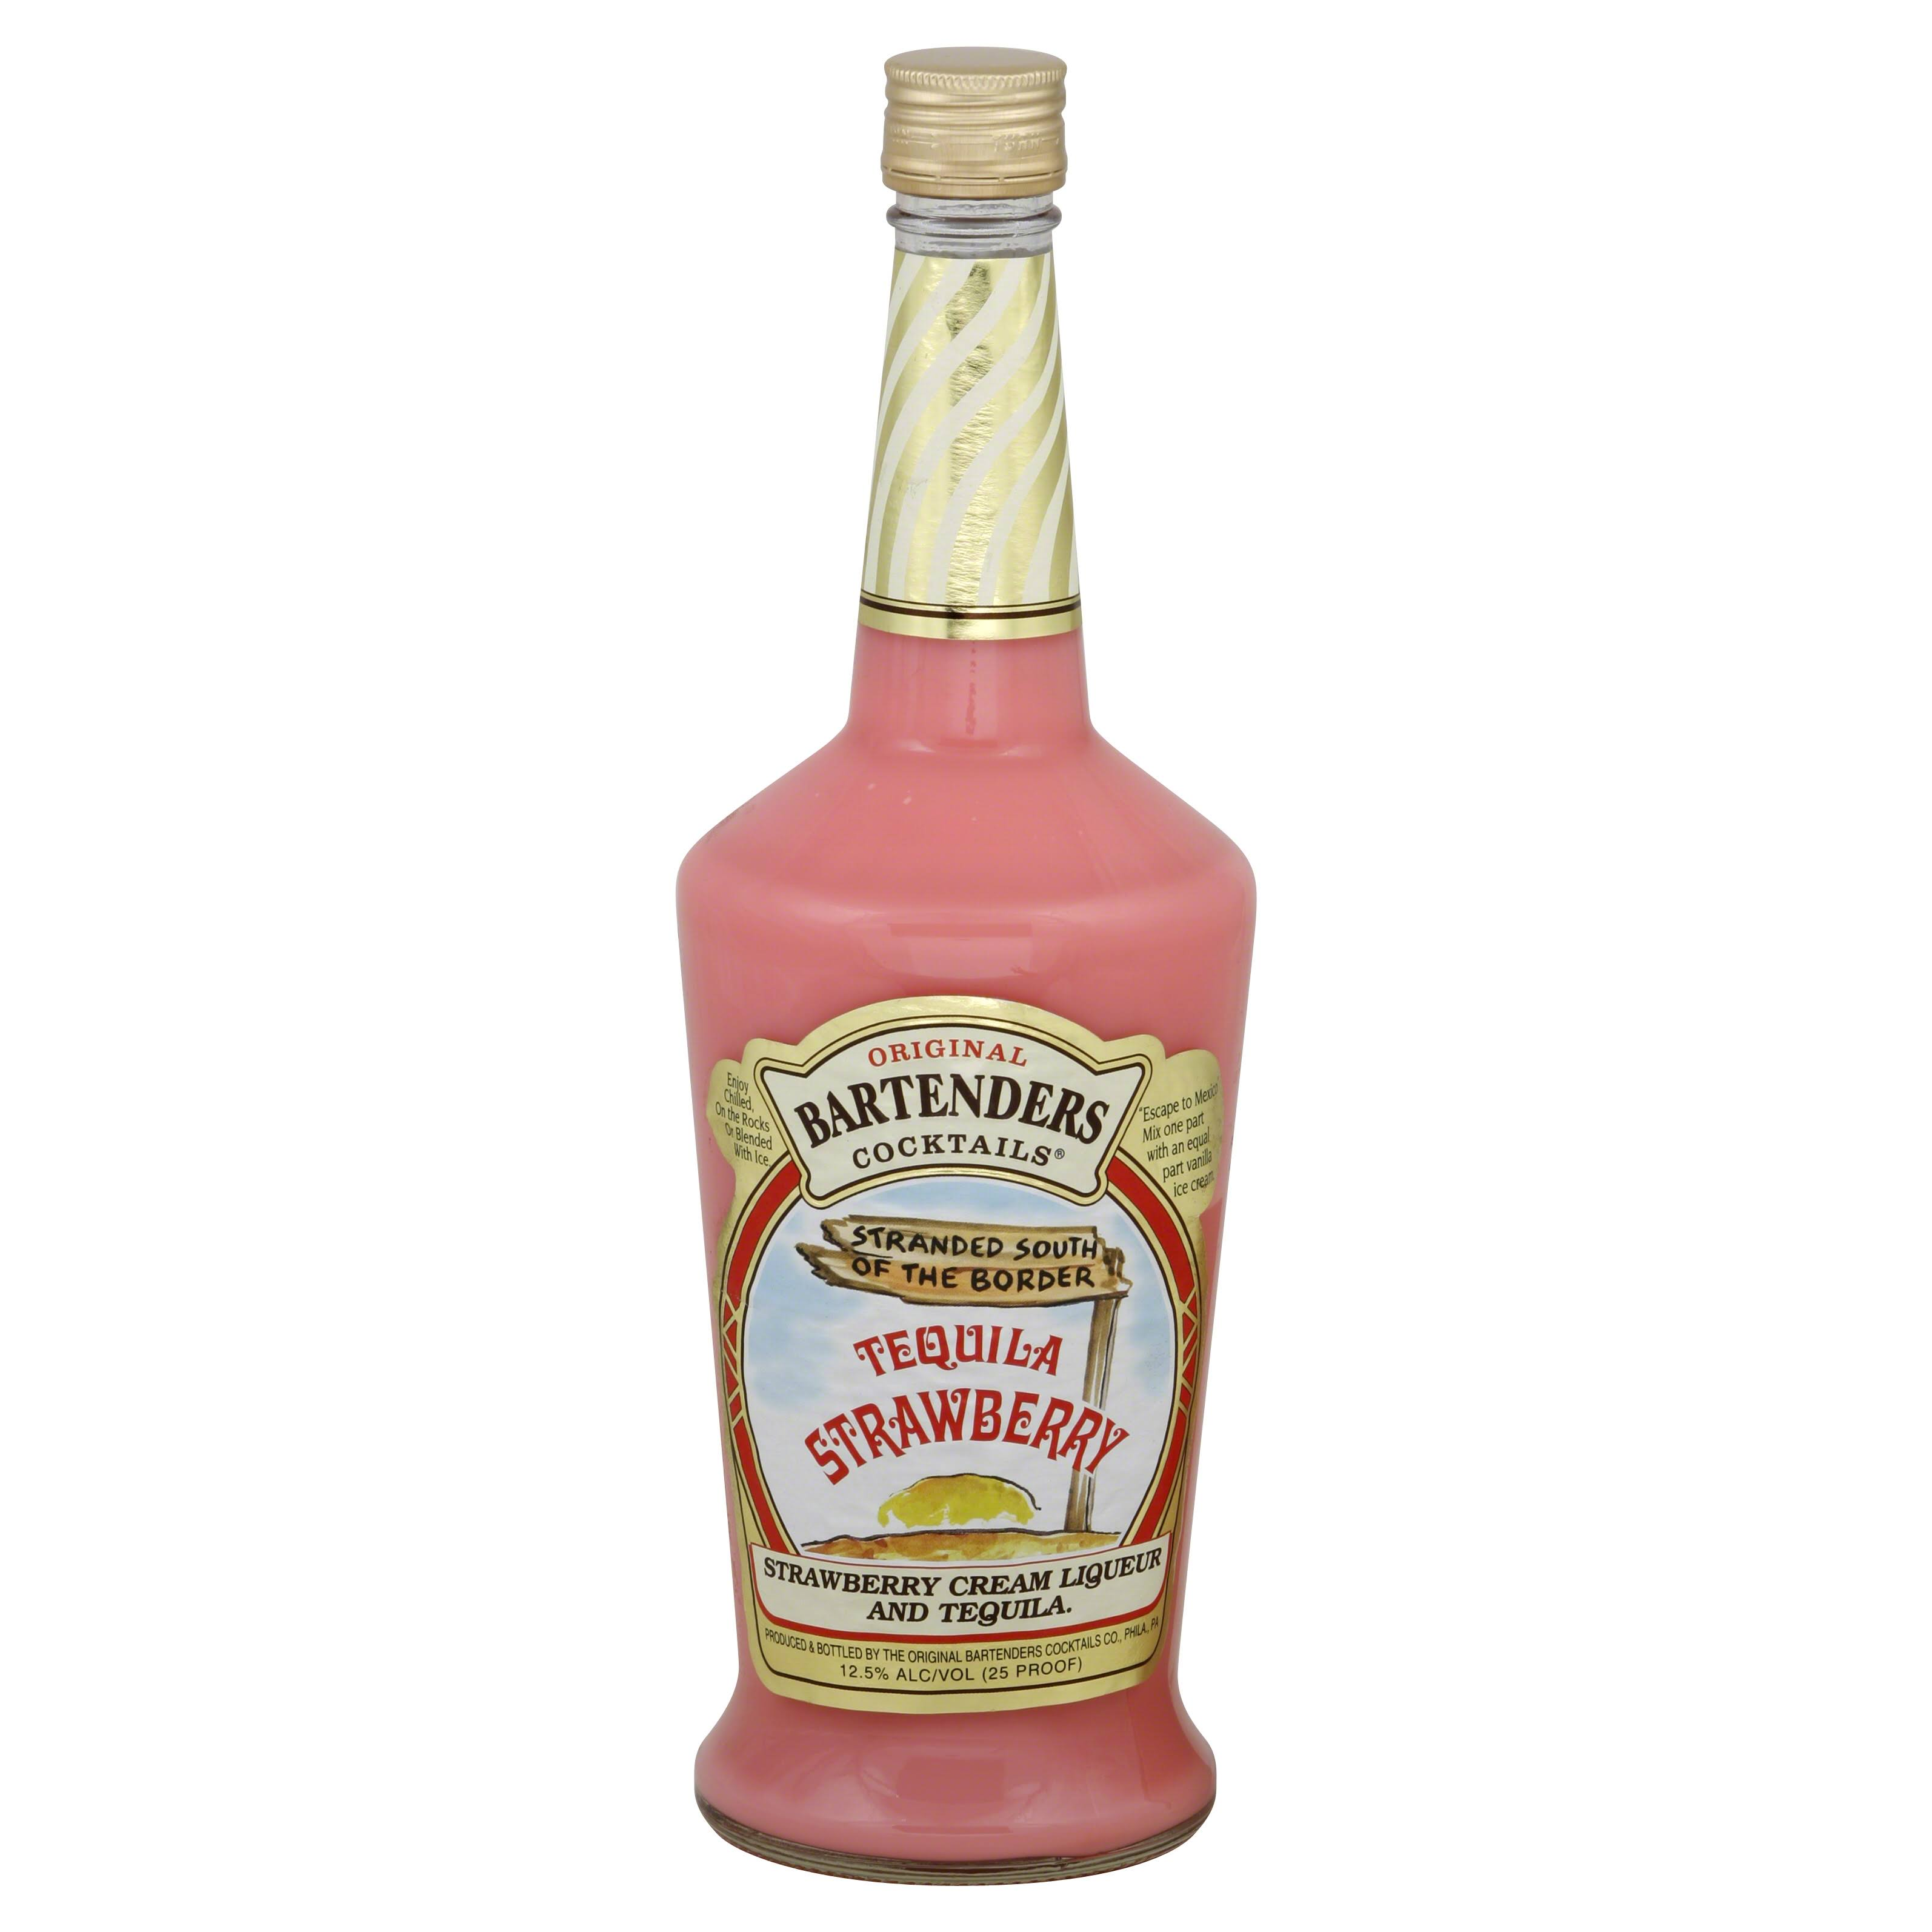 Bartenders Original Tequila, Strawberry - 750 ml